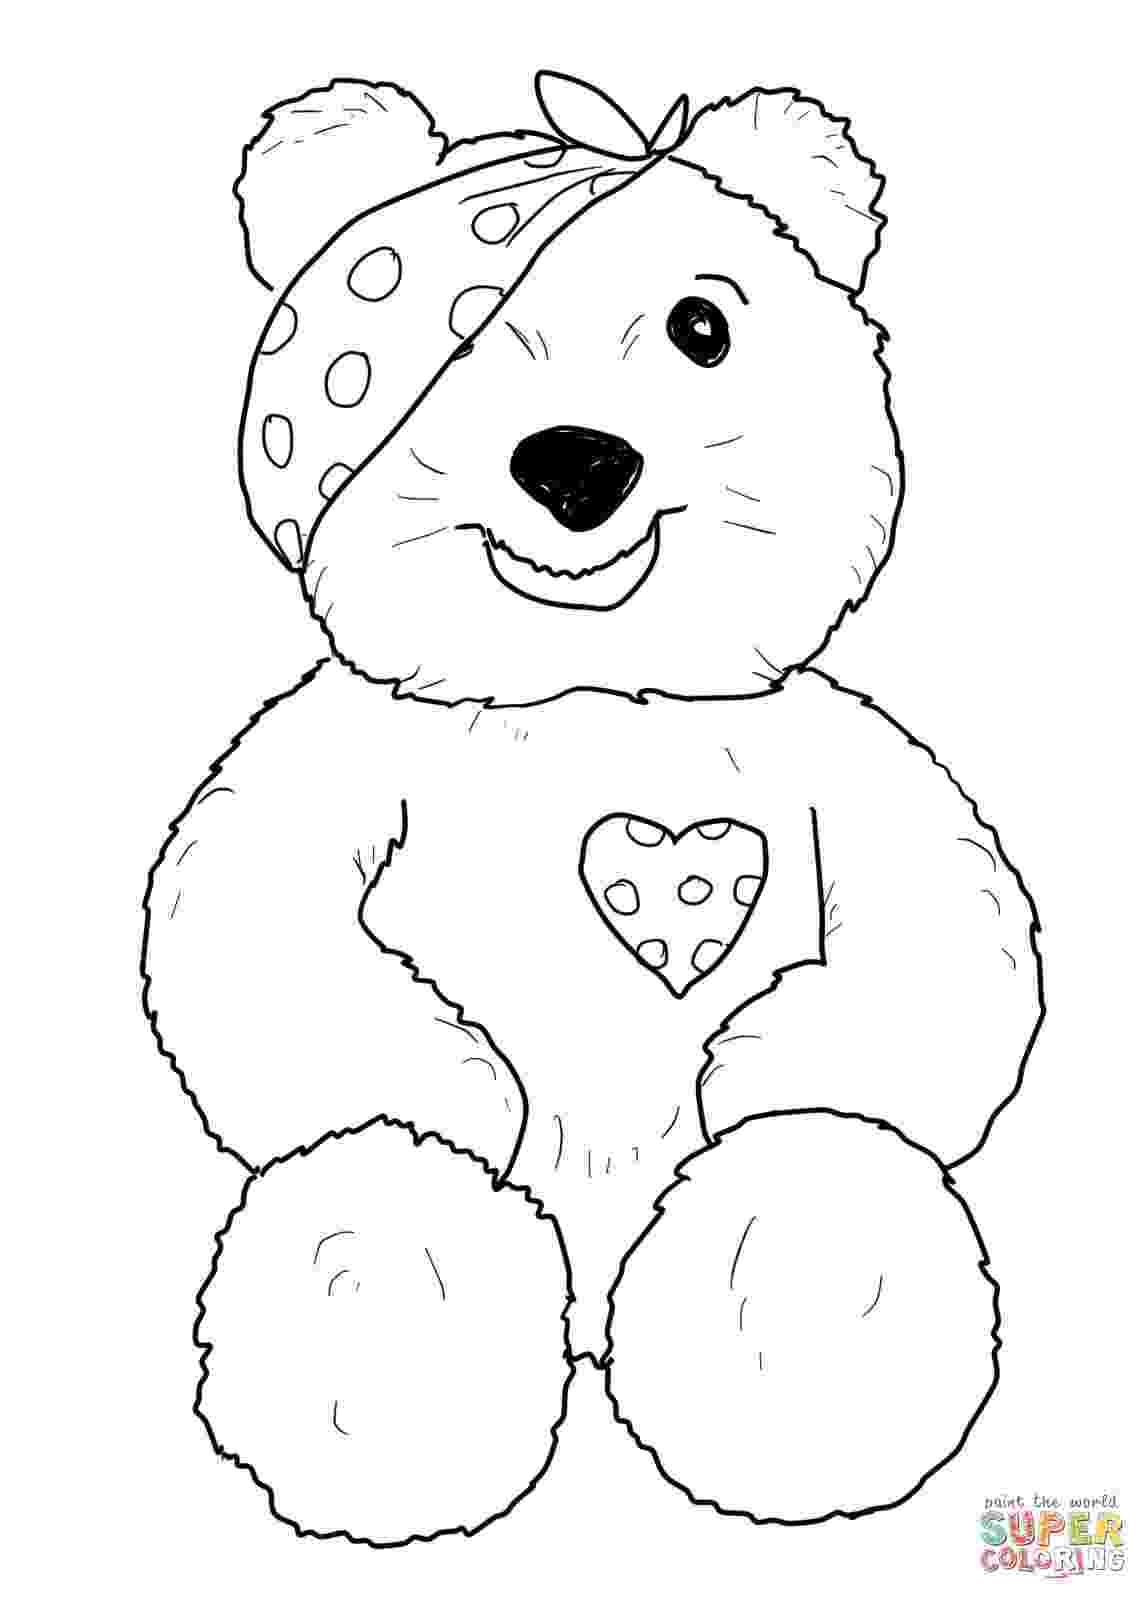 pudsey colouring pages children in need colouring in sheets pudsey pages colouring